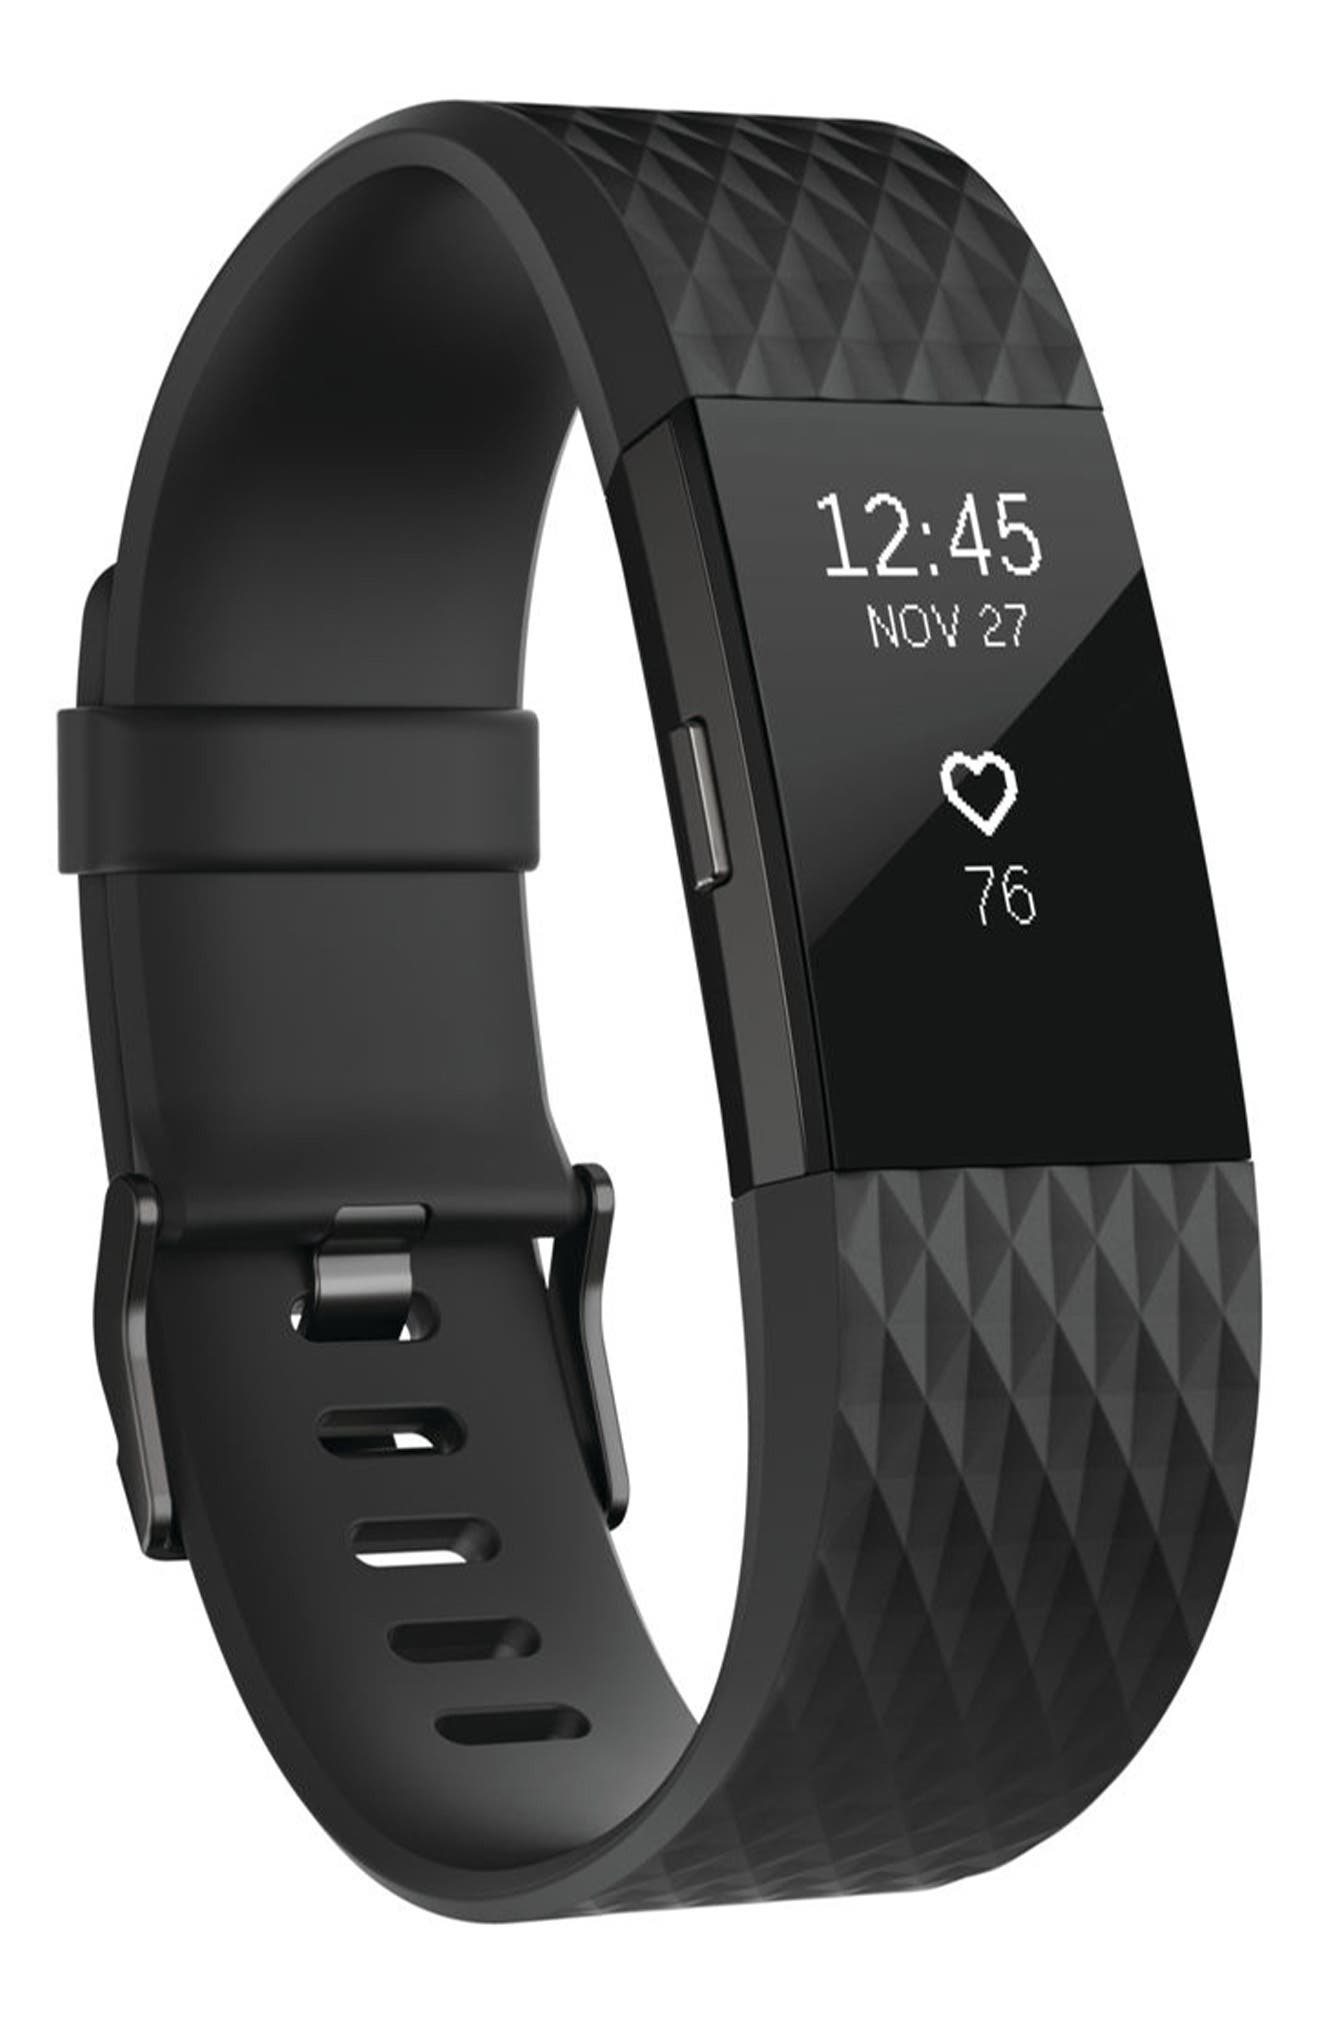 FITBIT,                             Charge 2 Special Edition Wireless Activity & Heart Rate Tracker,                             Main thumbnail 1, color,                             001